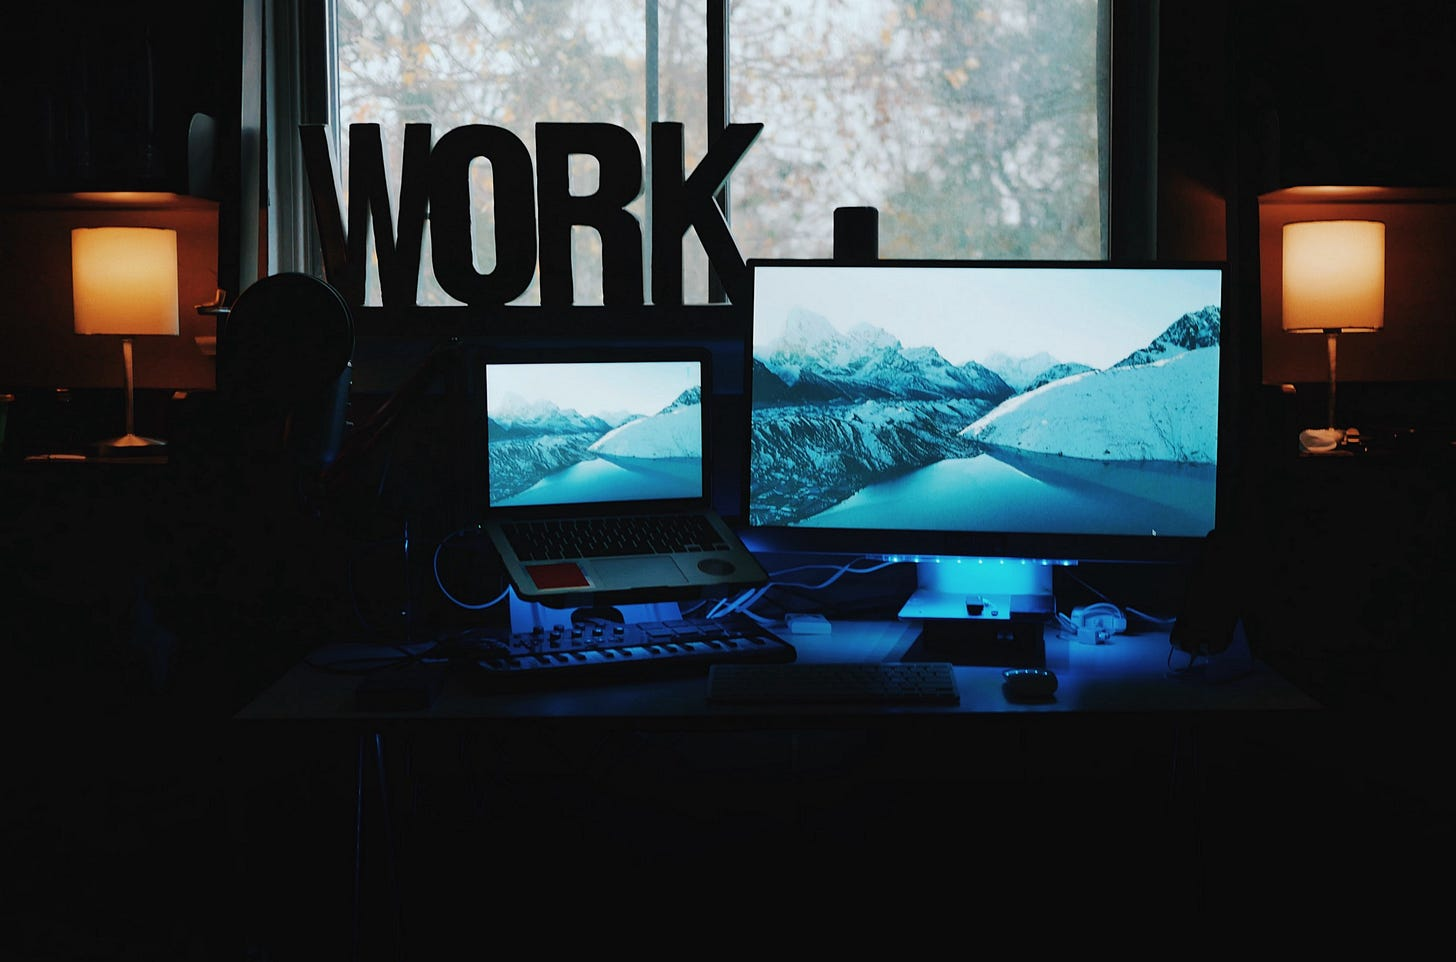 image of a desktop work station with the word work